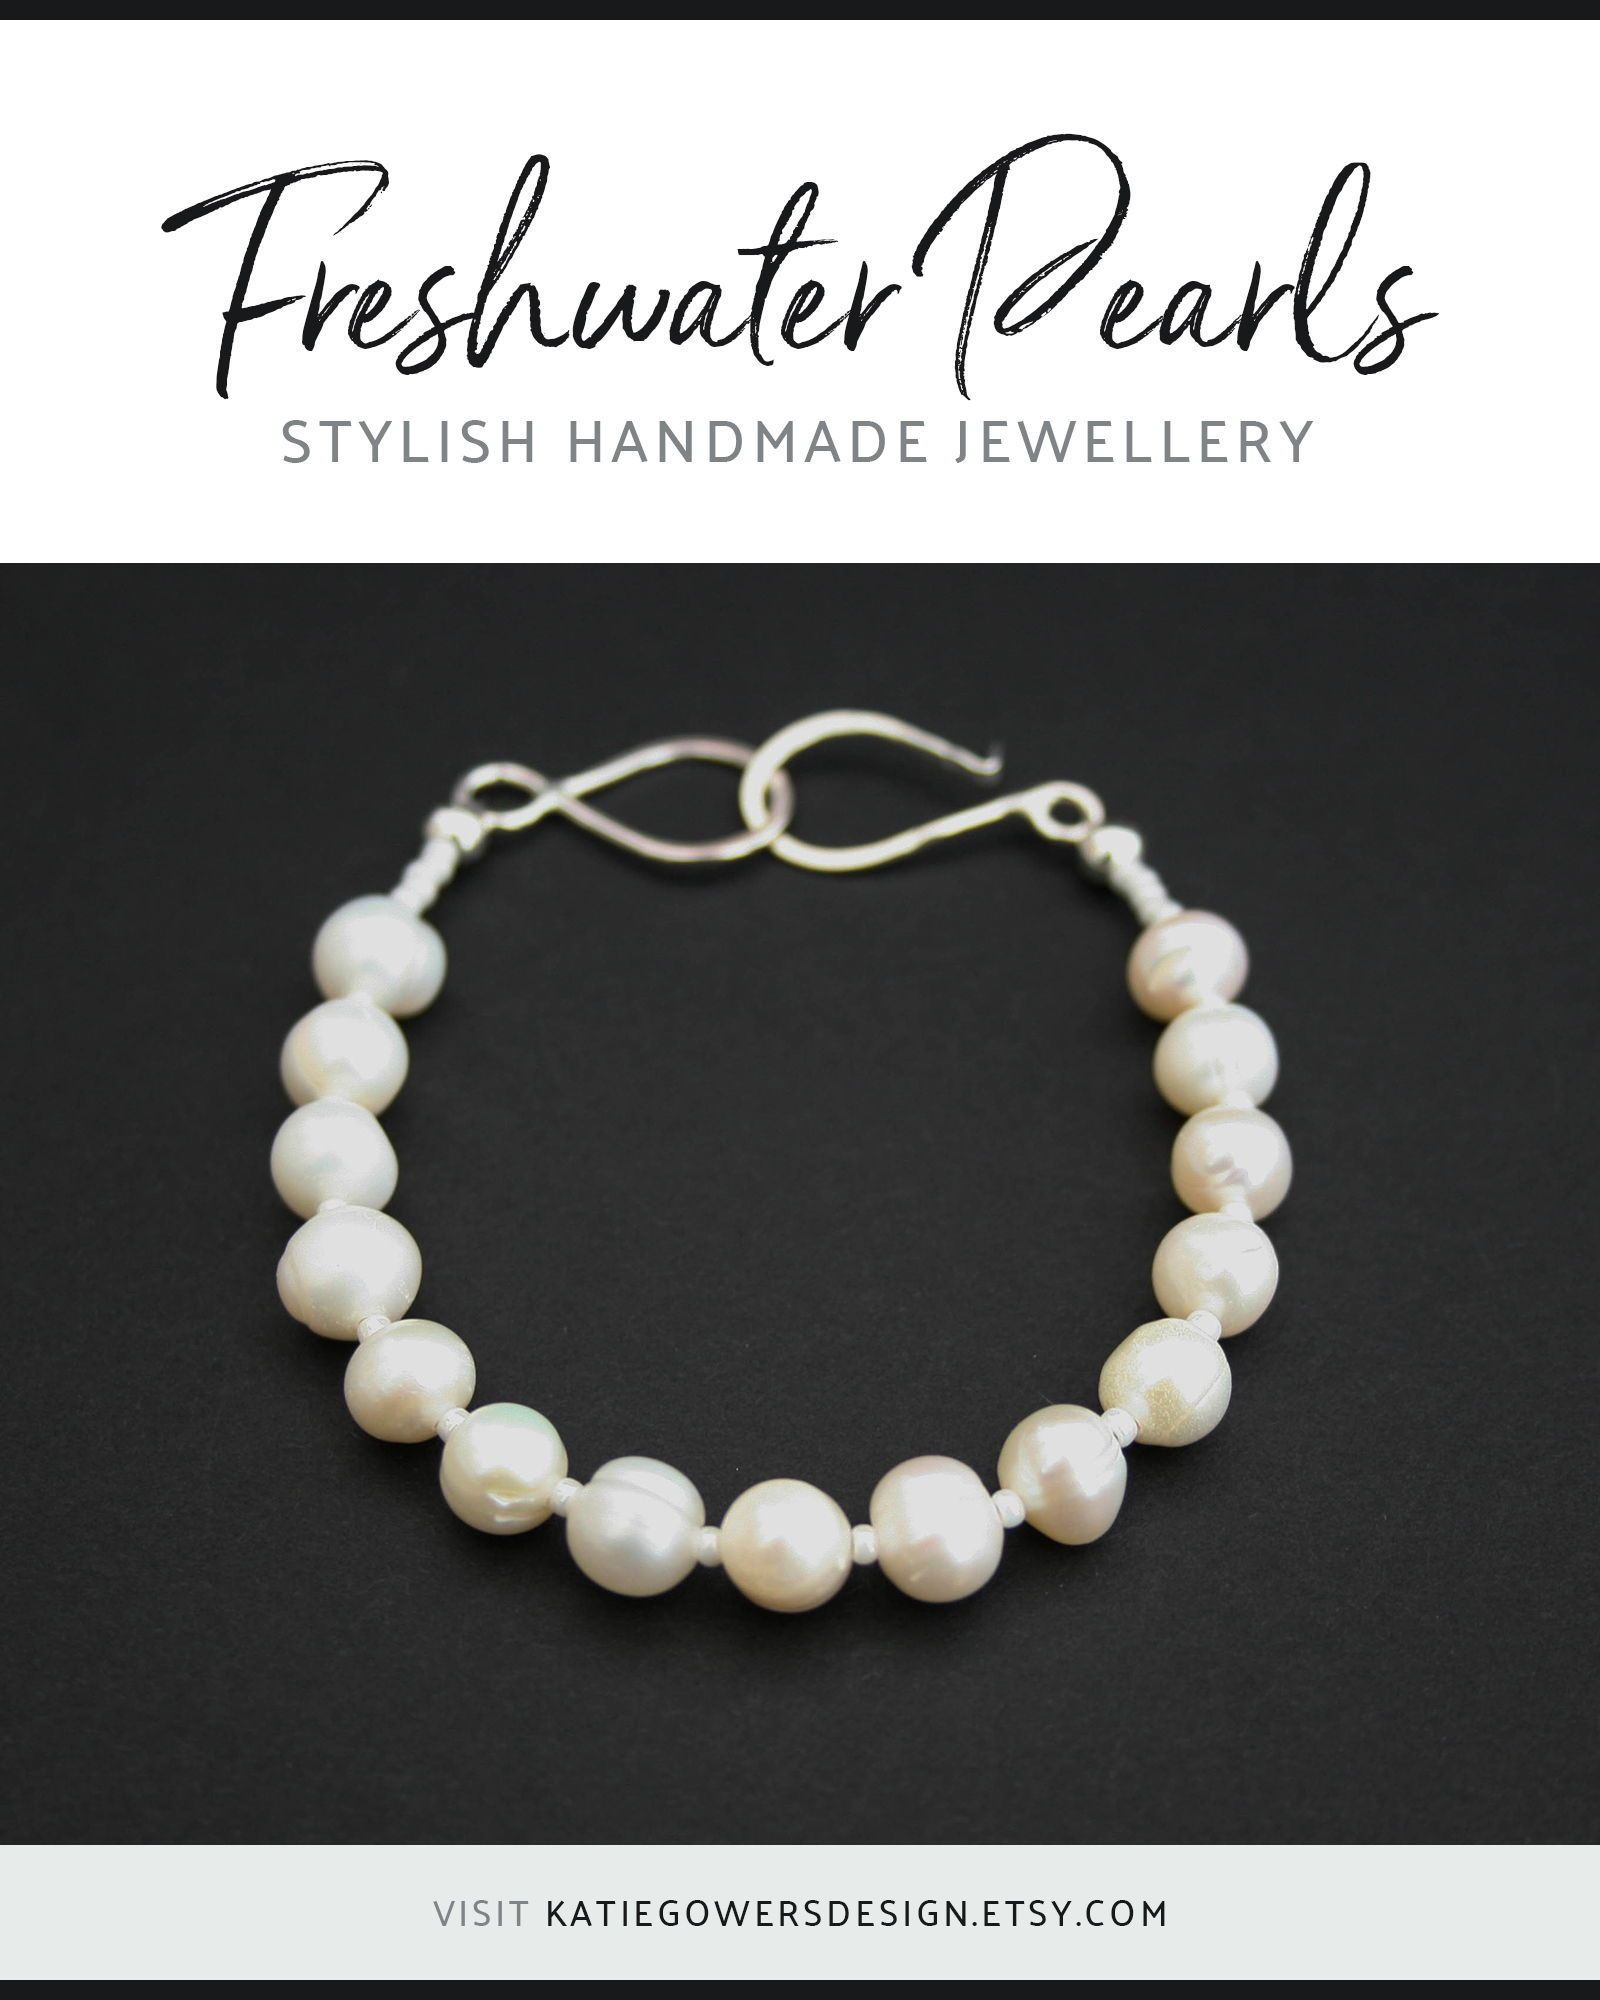 Freshwater Pearl Bracelet With Handmade Sterling Silver Clasp An Elegant